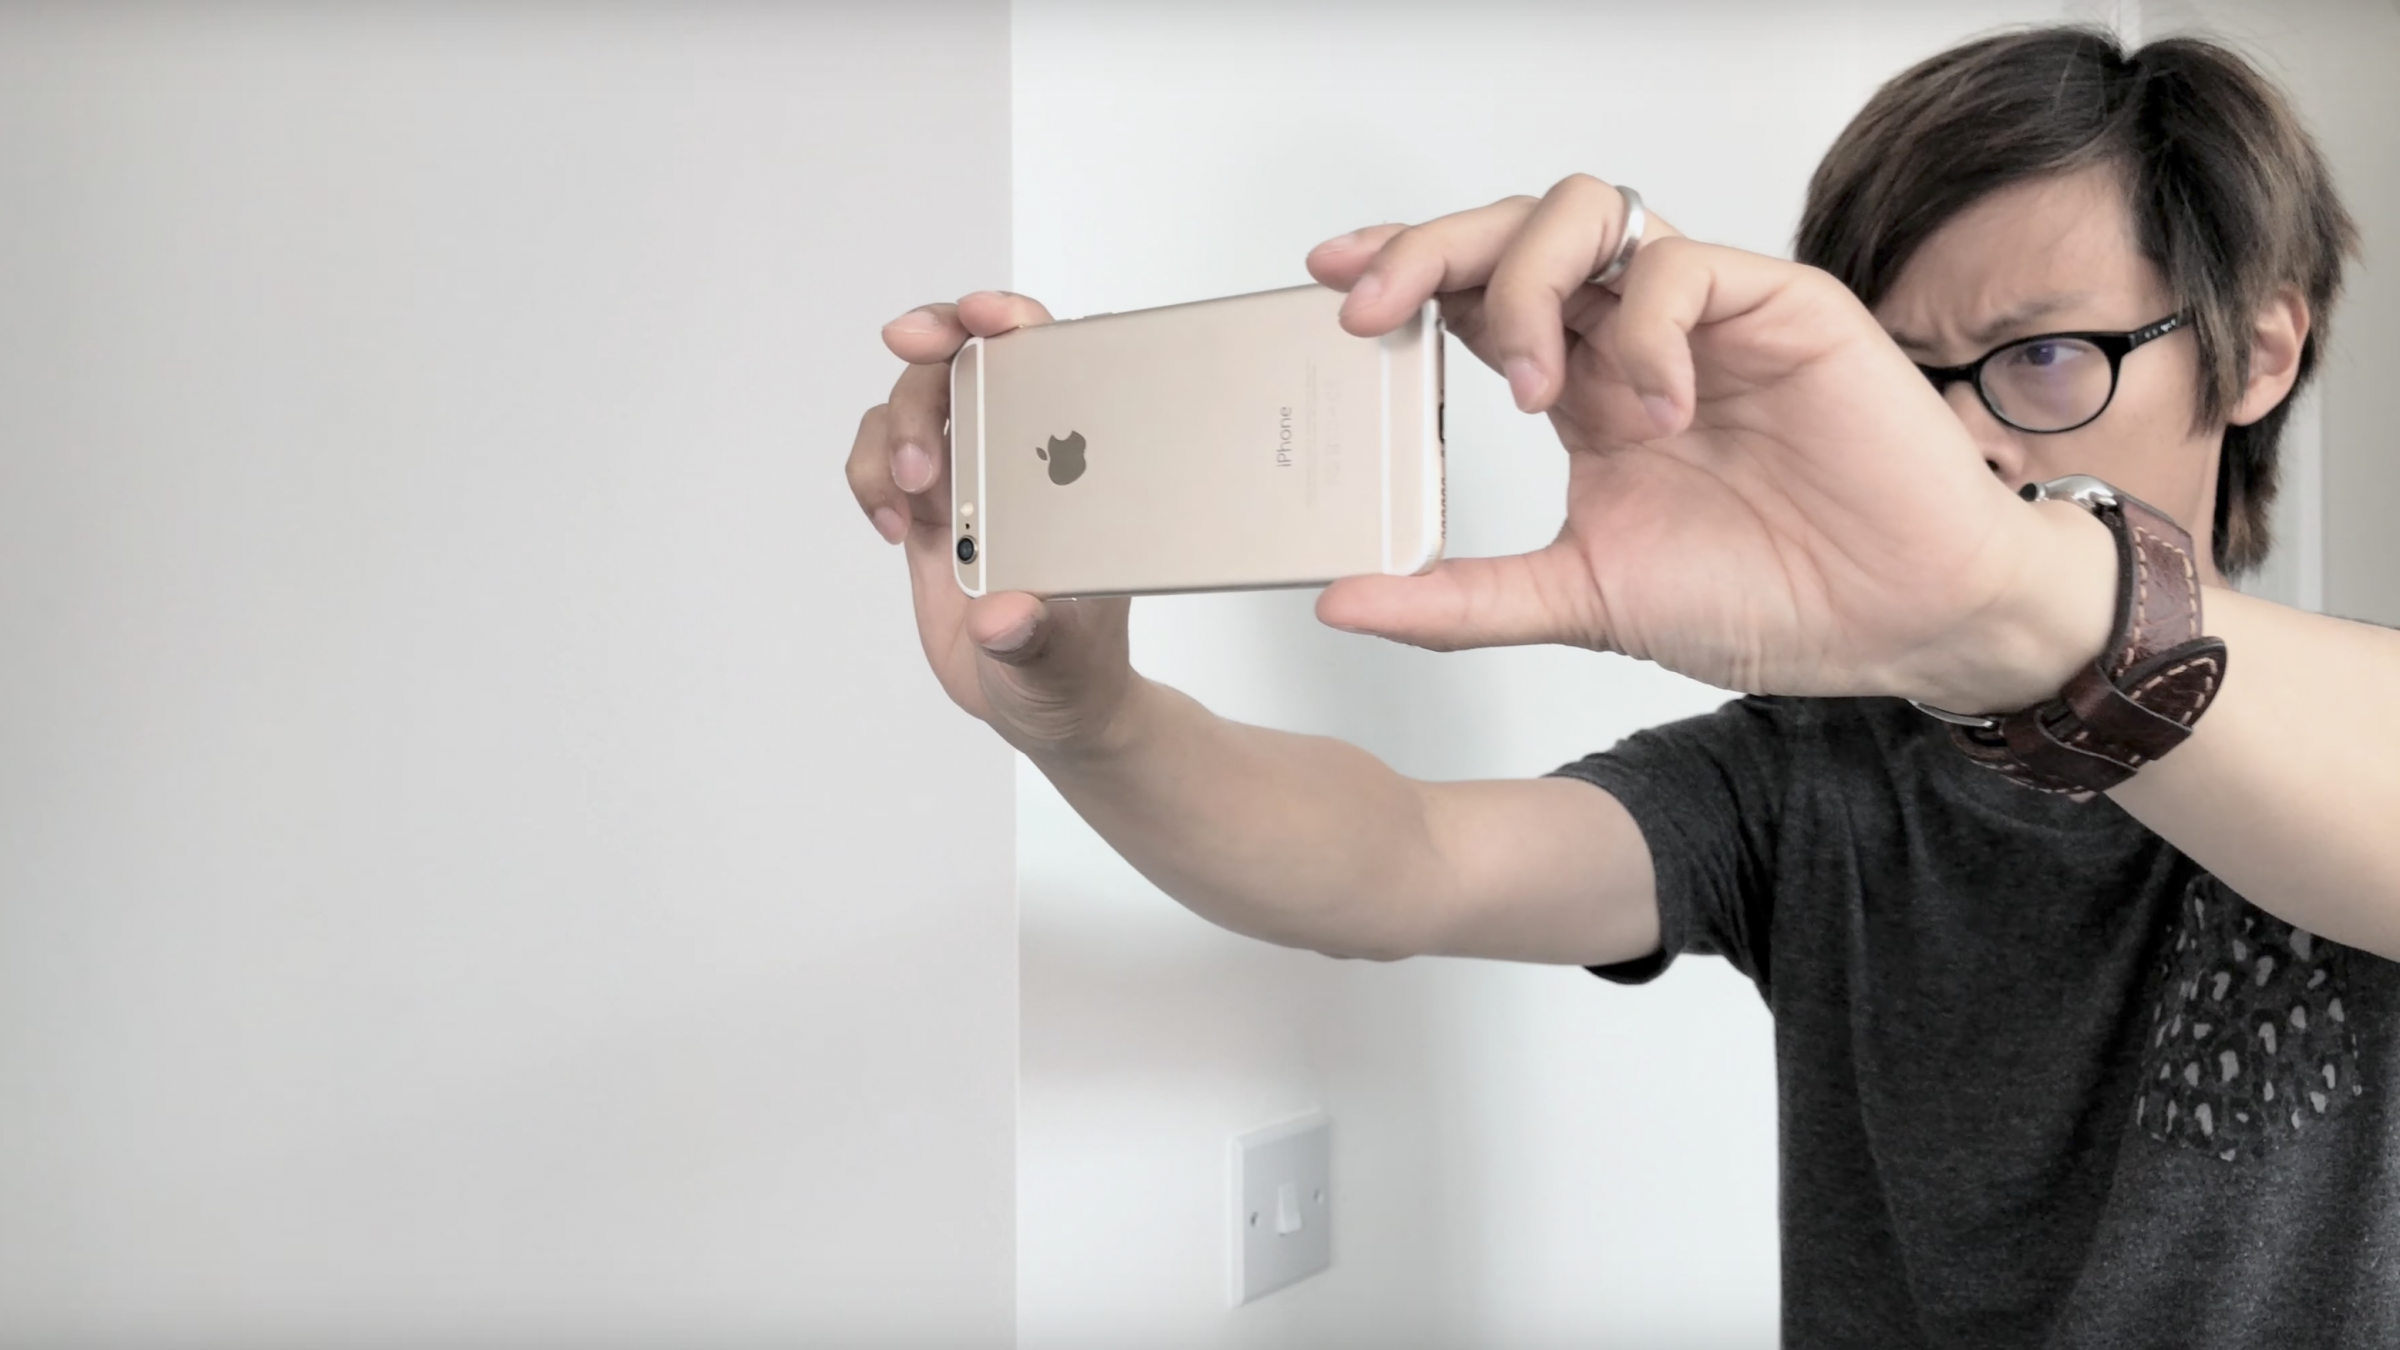 Let Kai Wong Give You 10 Tips on Better Smartphone Filmmaking